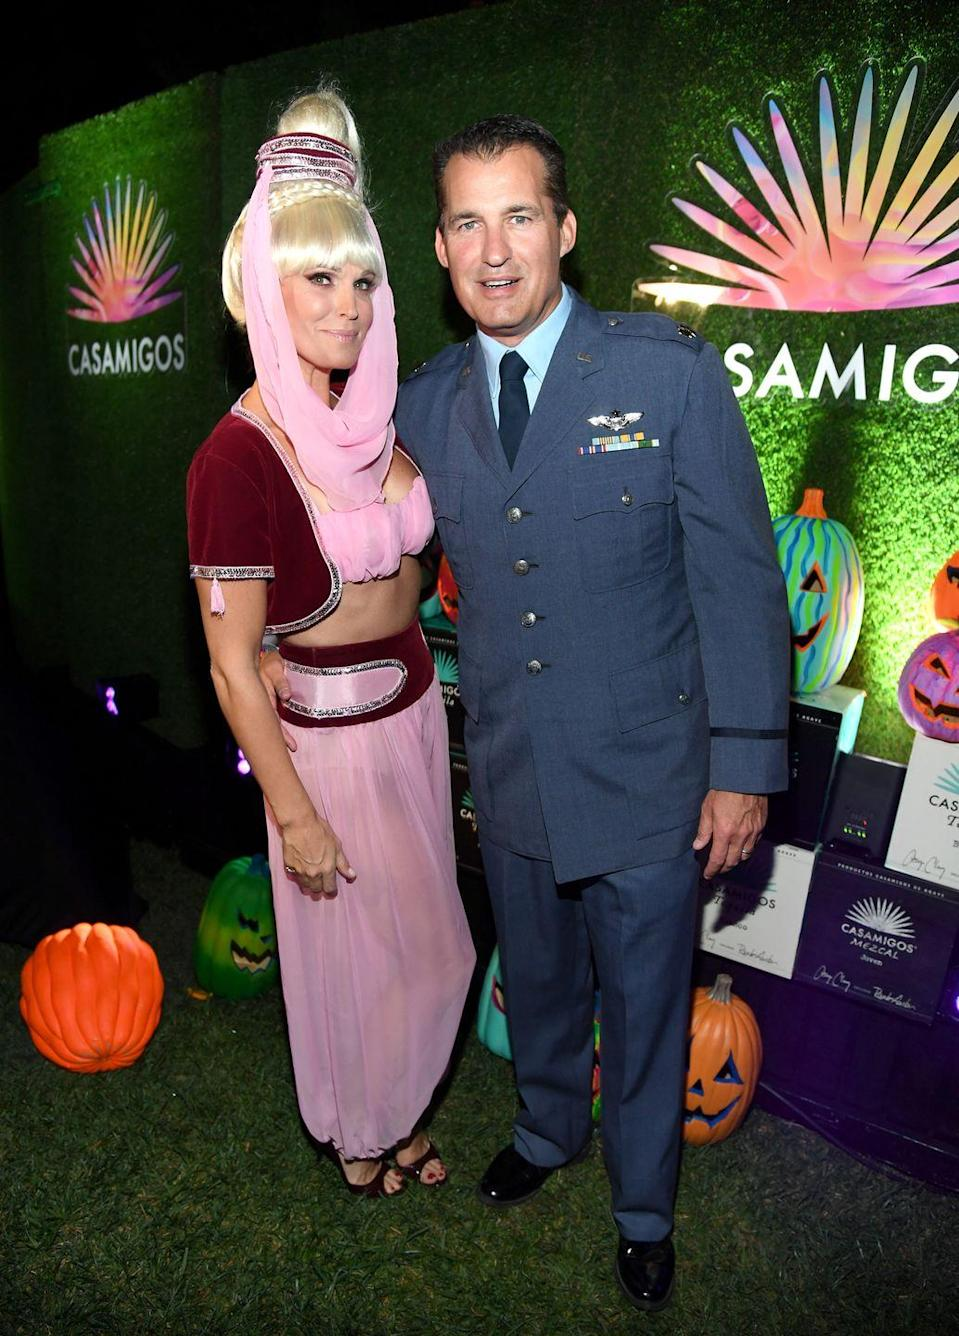 <p>Molly Sims and husband, Scott Stuber, threw it way back for the Casamigos Halloween party in 2019. Molly went with a spot-on Jeannie costume from<em> I Dream of Jeannie</em>, so of course Scott had to play Captain Tony Nelson.</p>